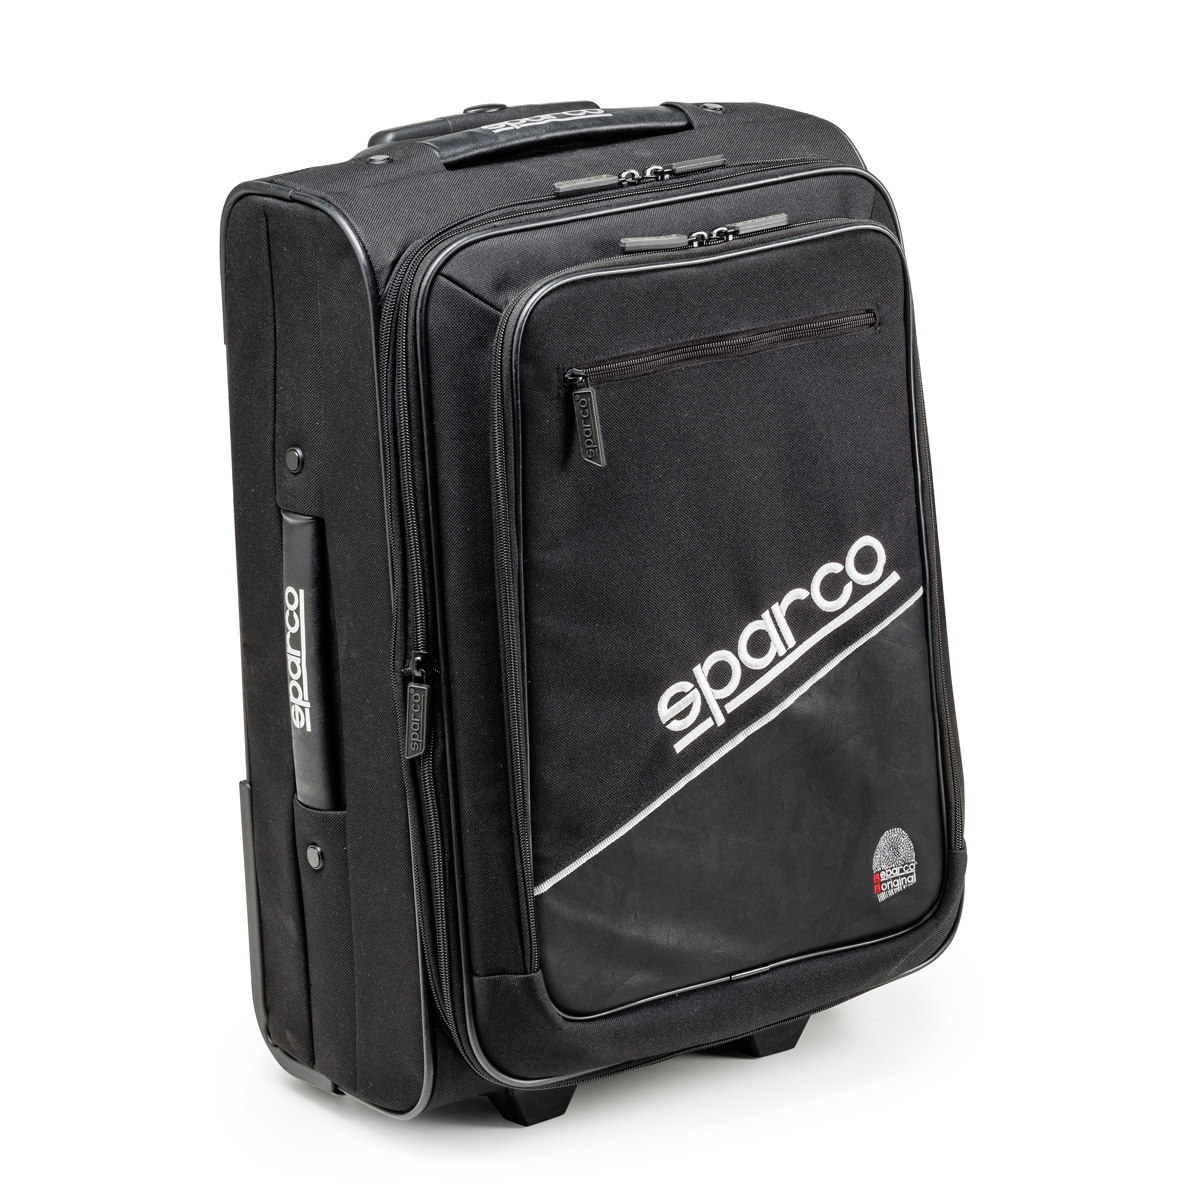 New Sparco Satellite Bag